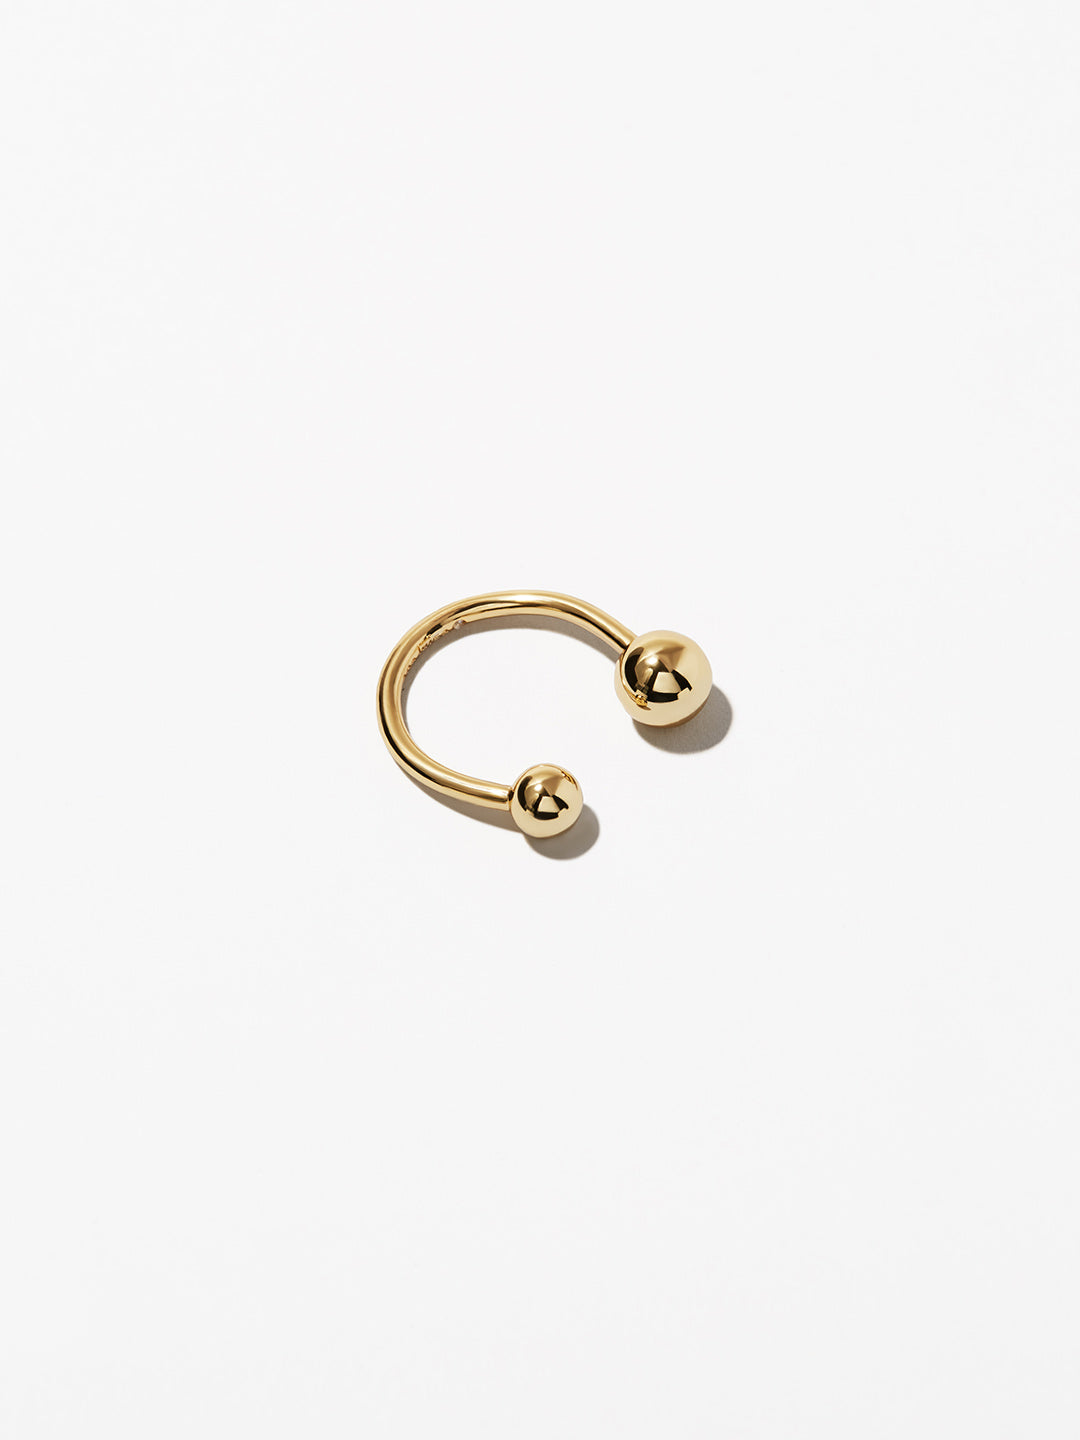 Ana Luisa Jewelry Rings Duo Ball Ring Laurel Gold